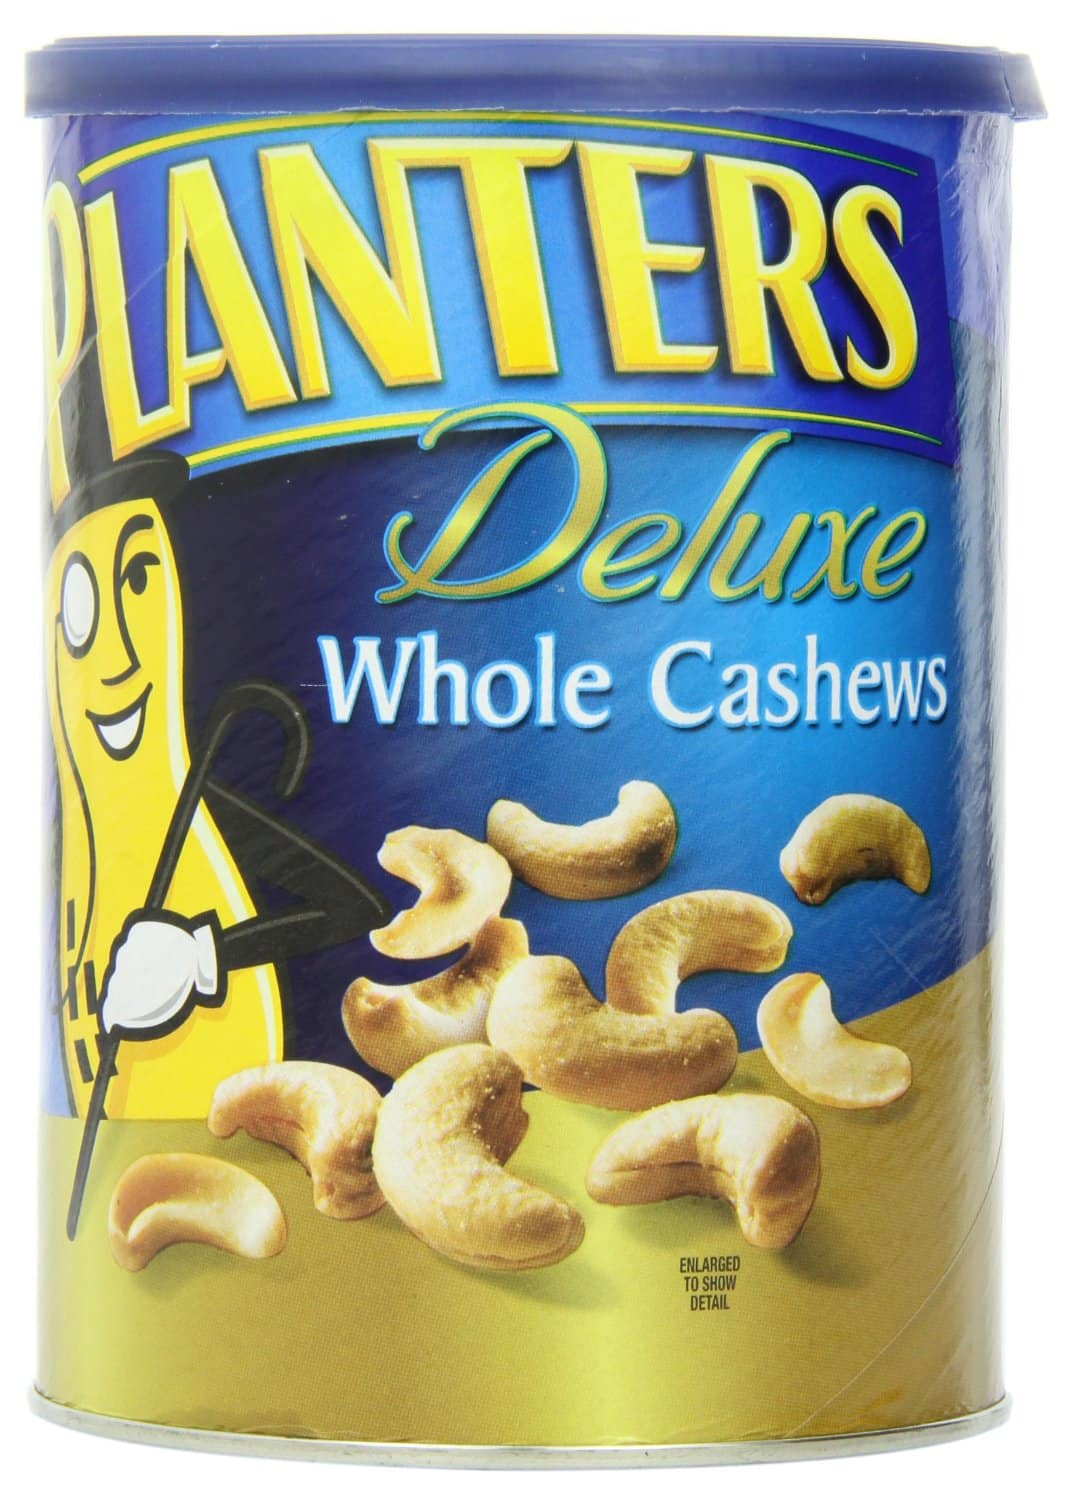 18.25oz Planters Deluxe Whole Cashew $6.74 or less + free shipping & more